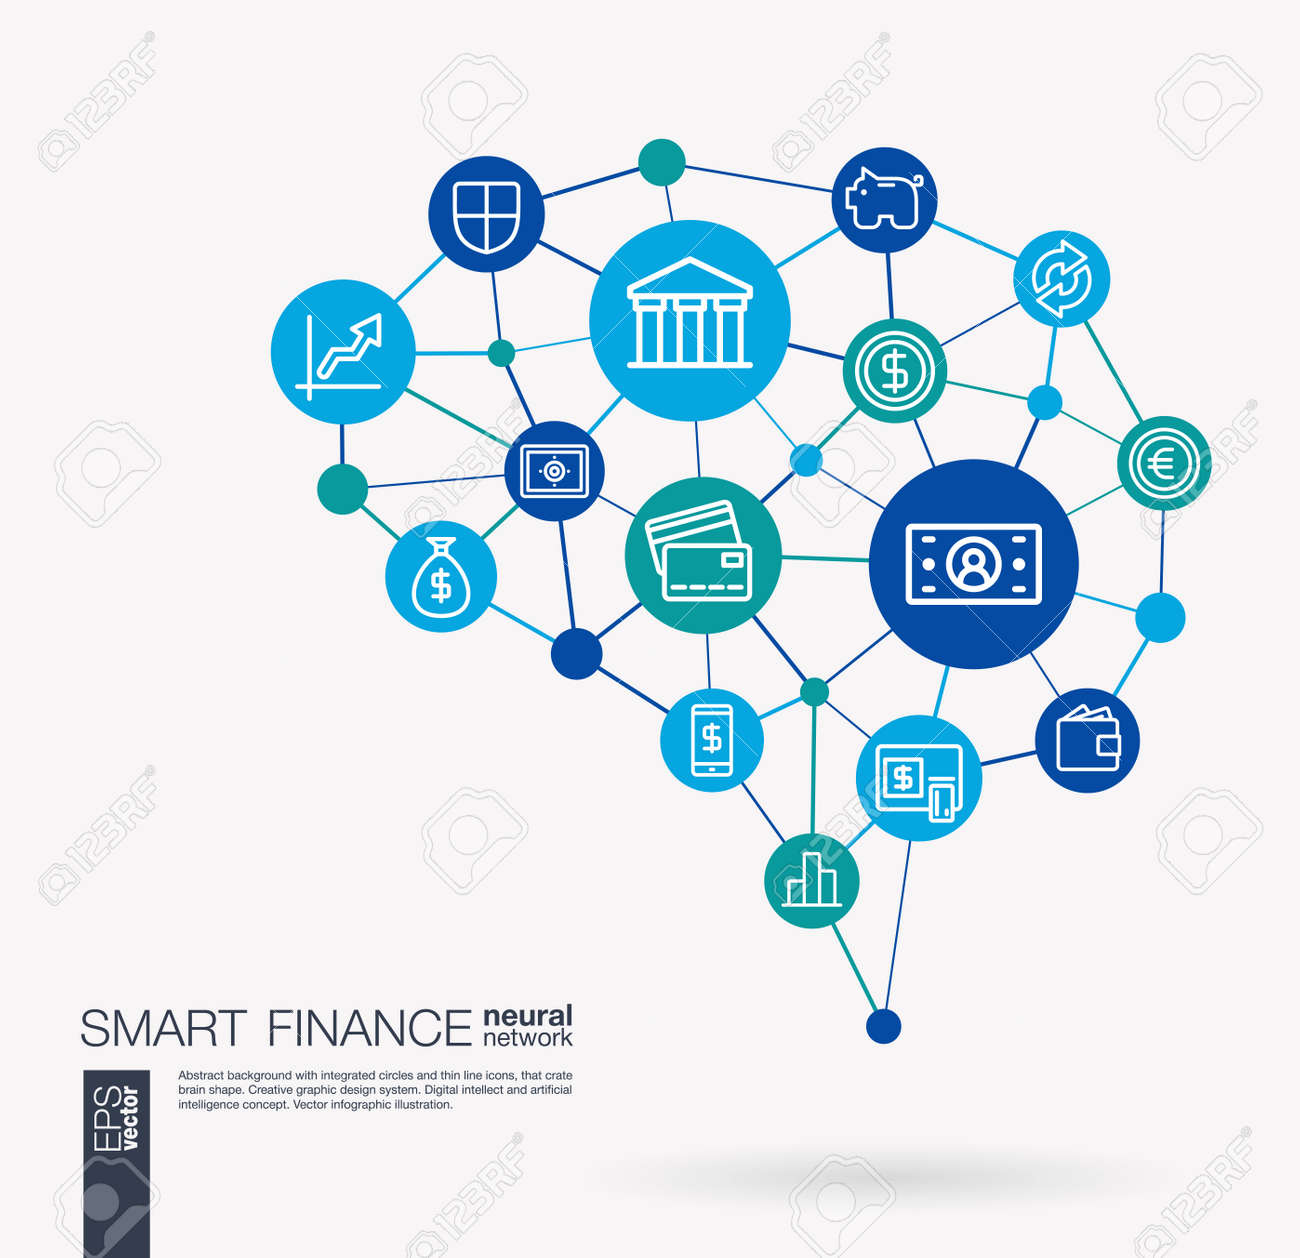 AI creative think system concept. Digital mesh smart brain idea. Futuristic interact neural network grid connect. Finance, money bank, market, payment transaction integrated business vector icons. - 94803998